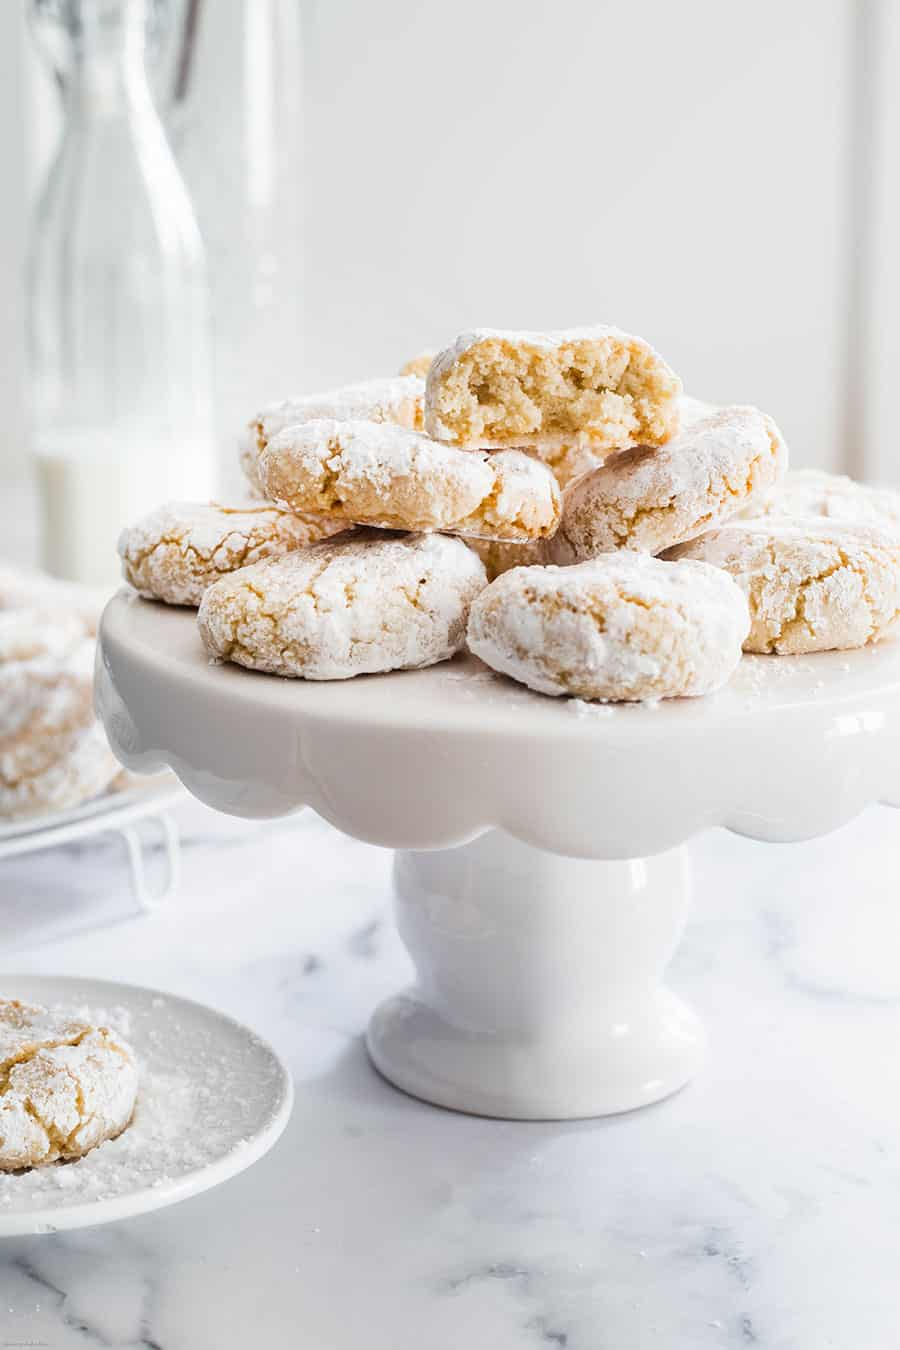 Amaretti cookies on a white cake stand.